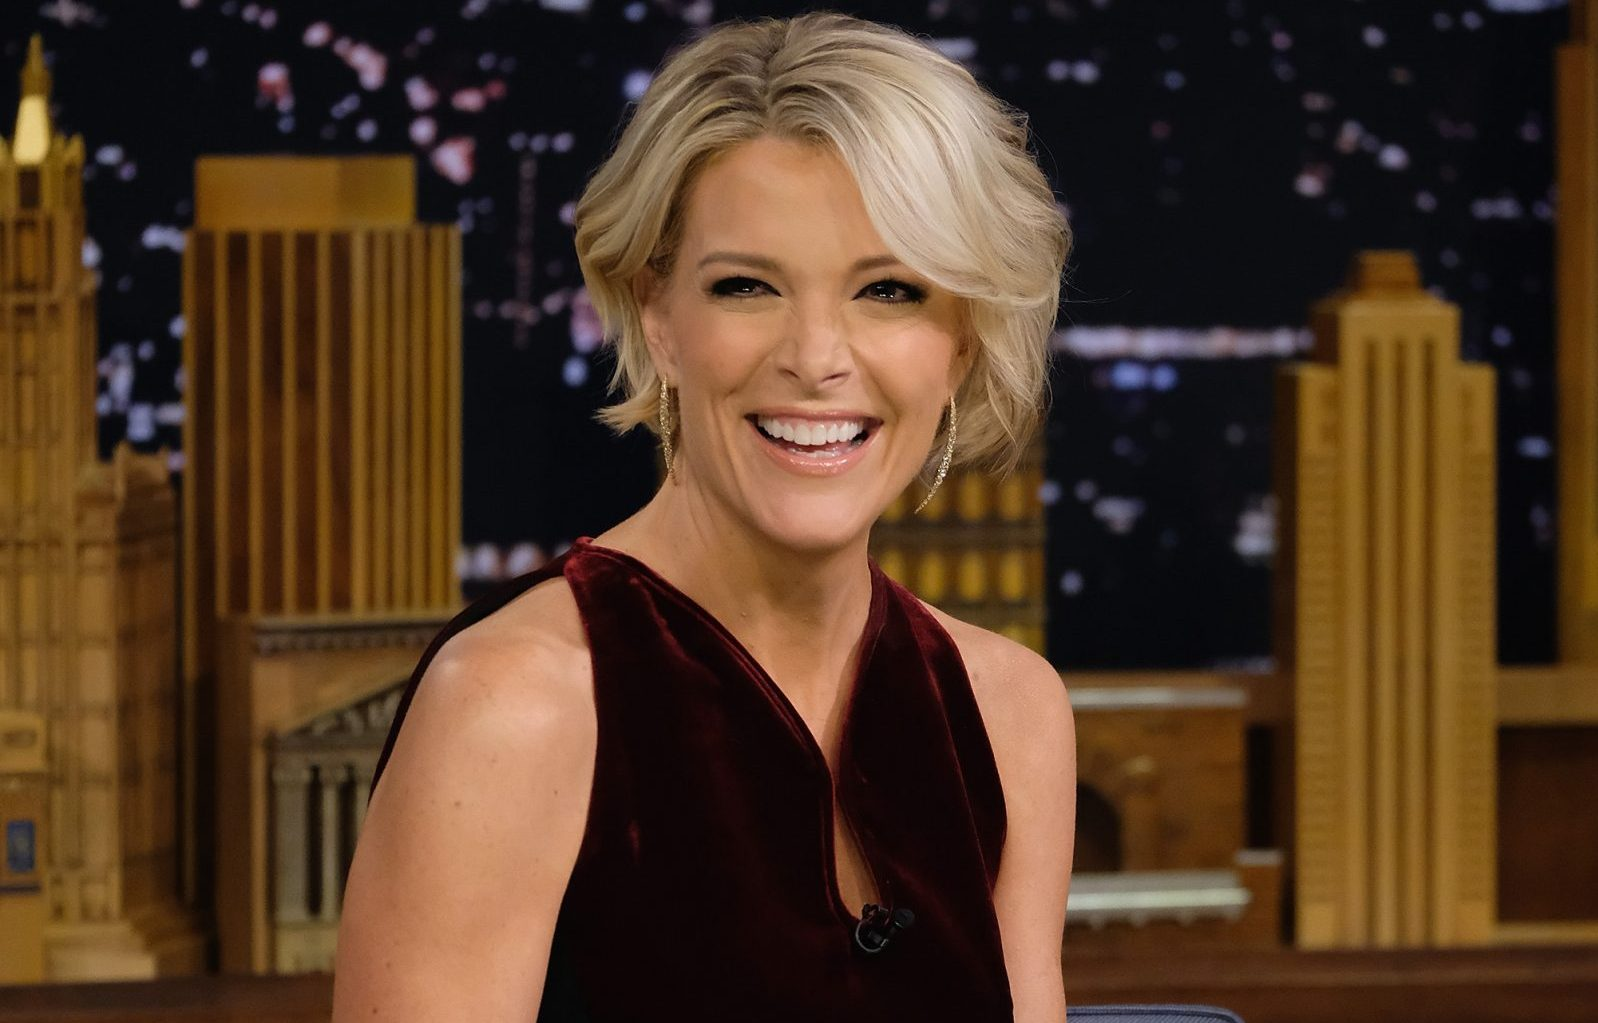 Megyn Kelly. (Getty Images)